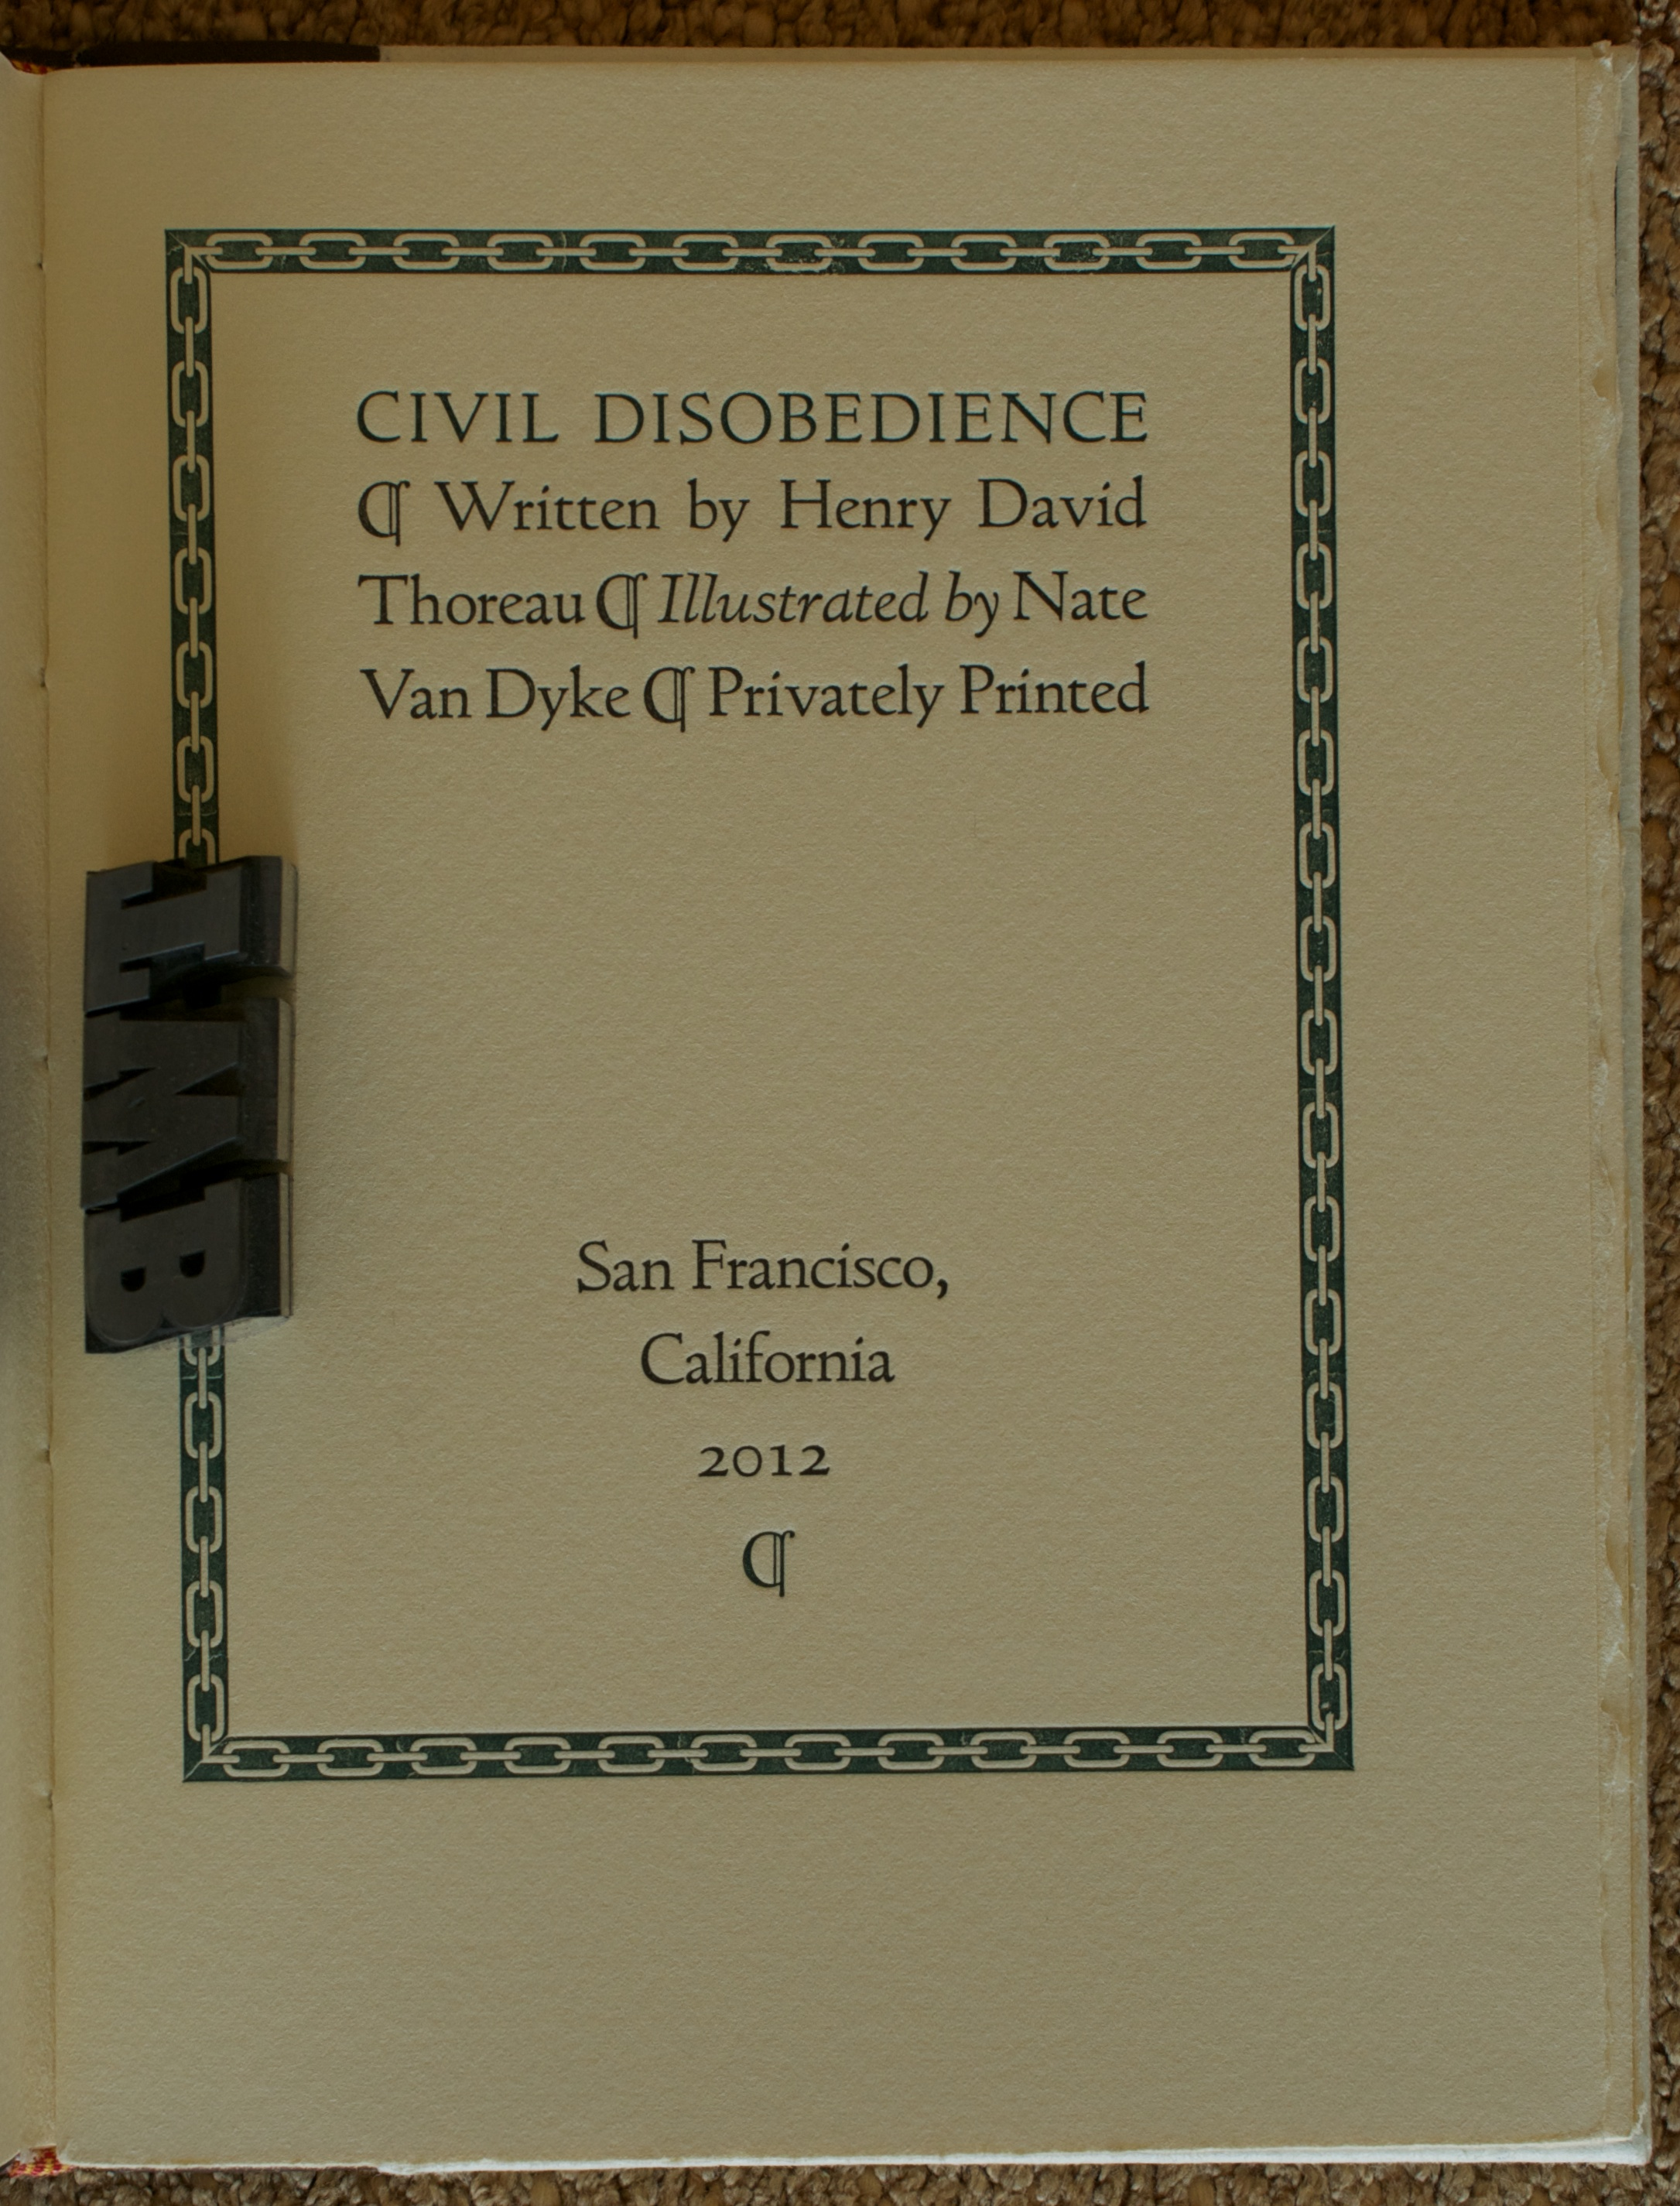 civil disobedience by henry david thoreau published by sharp civil disobedience 4